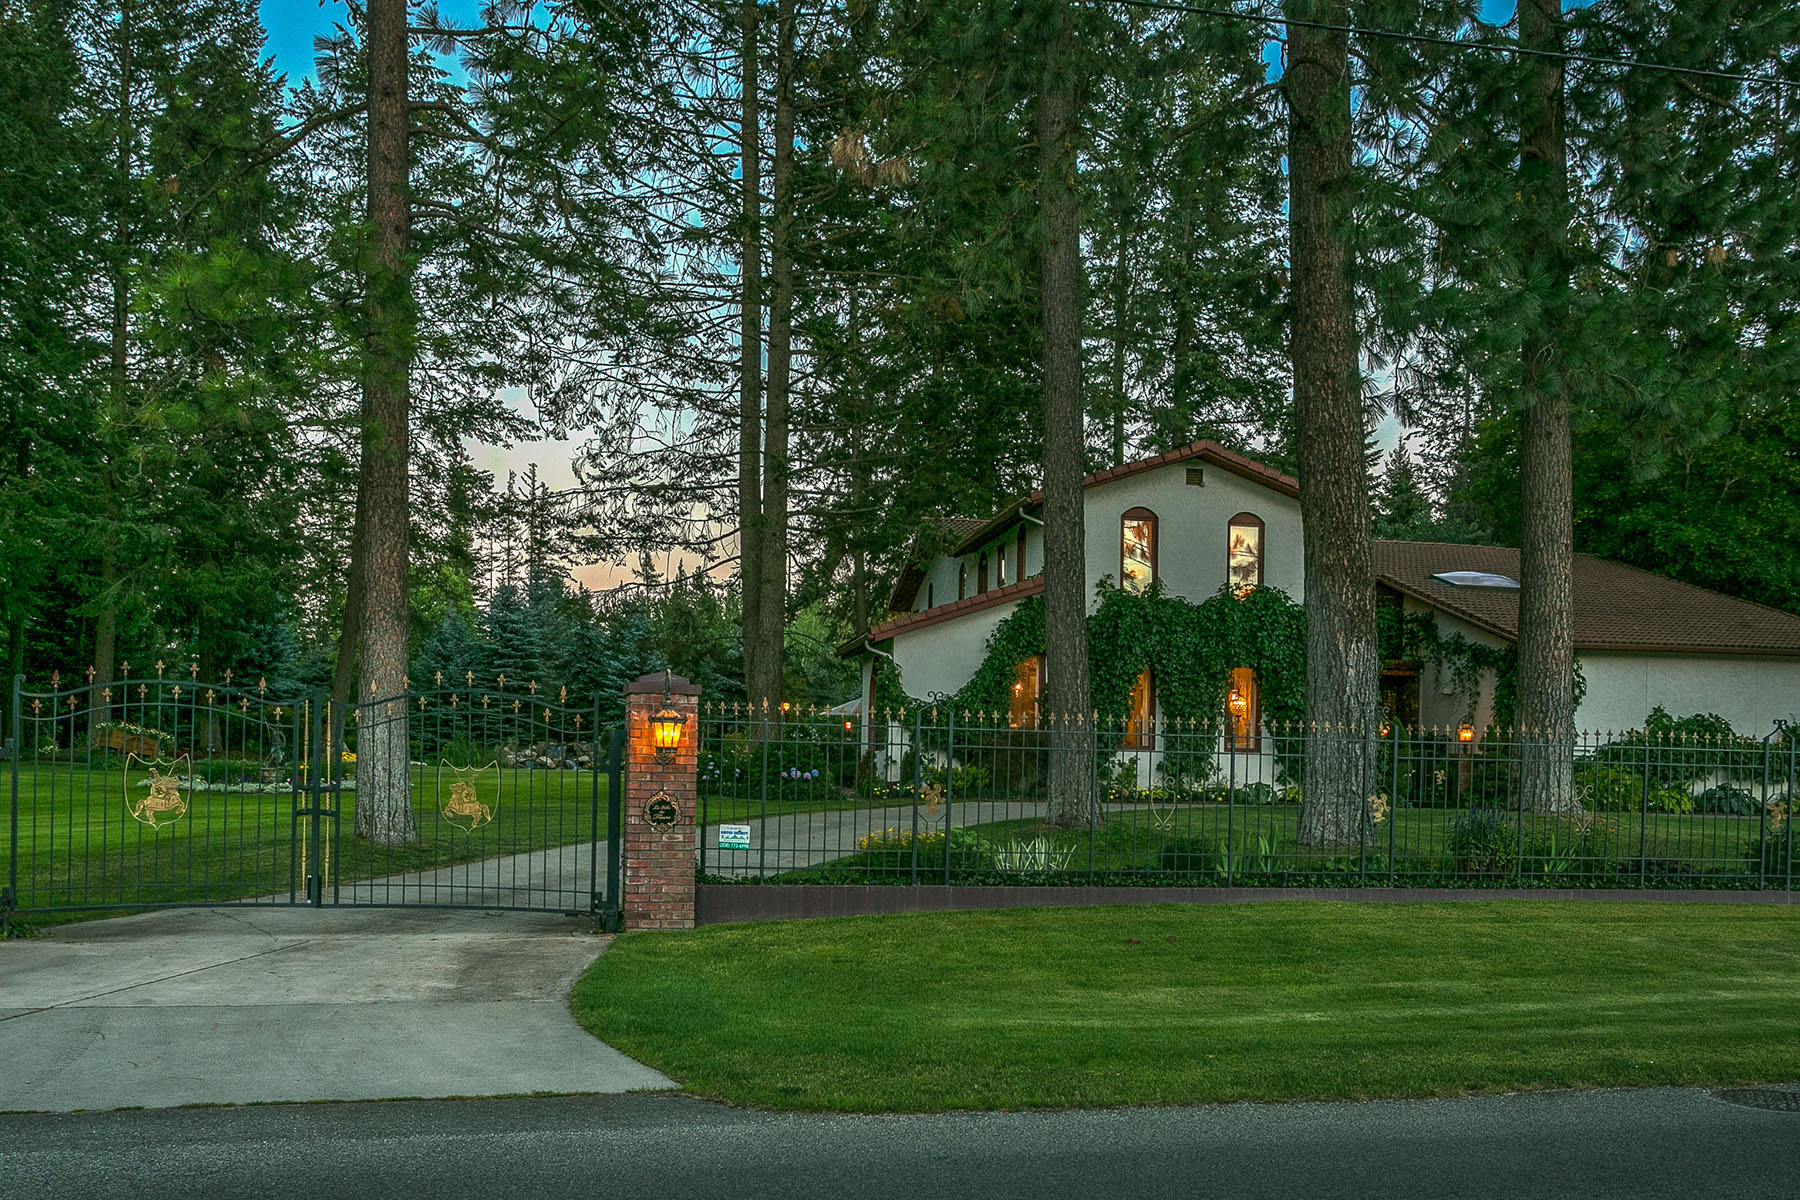 Single Family Home for Sale at Magnificent Estate and Gardens in Hayden 12908 N Strahorn Rd Hayden, Idaho, 83835 United States